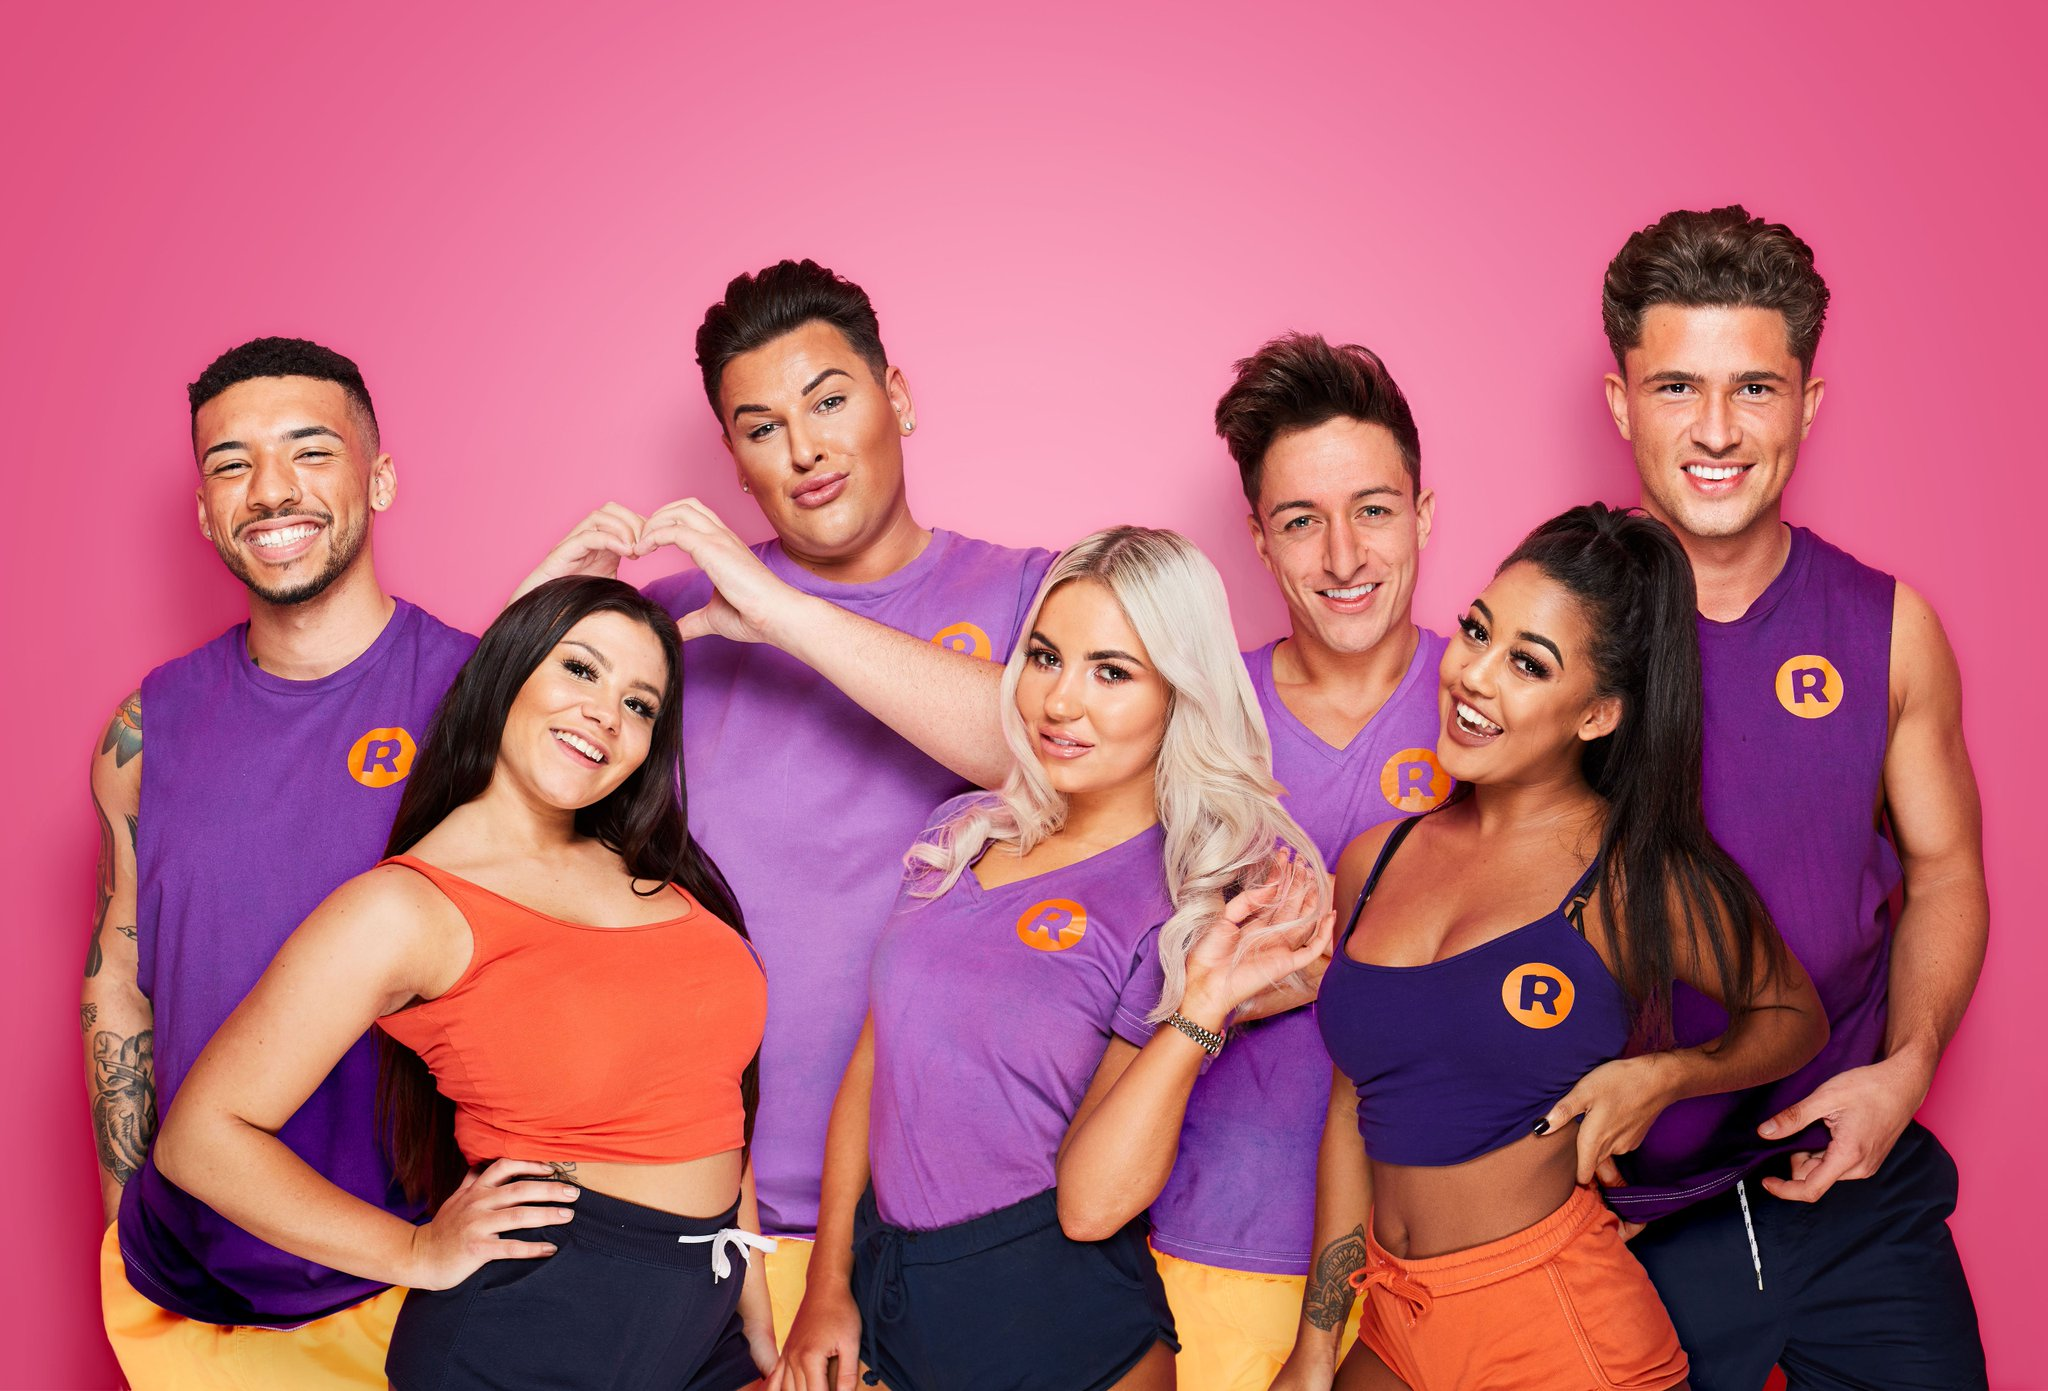 There's a NEW guy in NEW #IbizaWeekender 👀☀️🌴❤️ Tonight 9pm @itv2 https://t.co/uxEDqt0bml